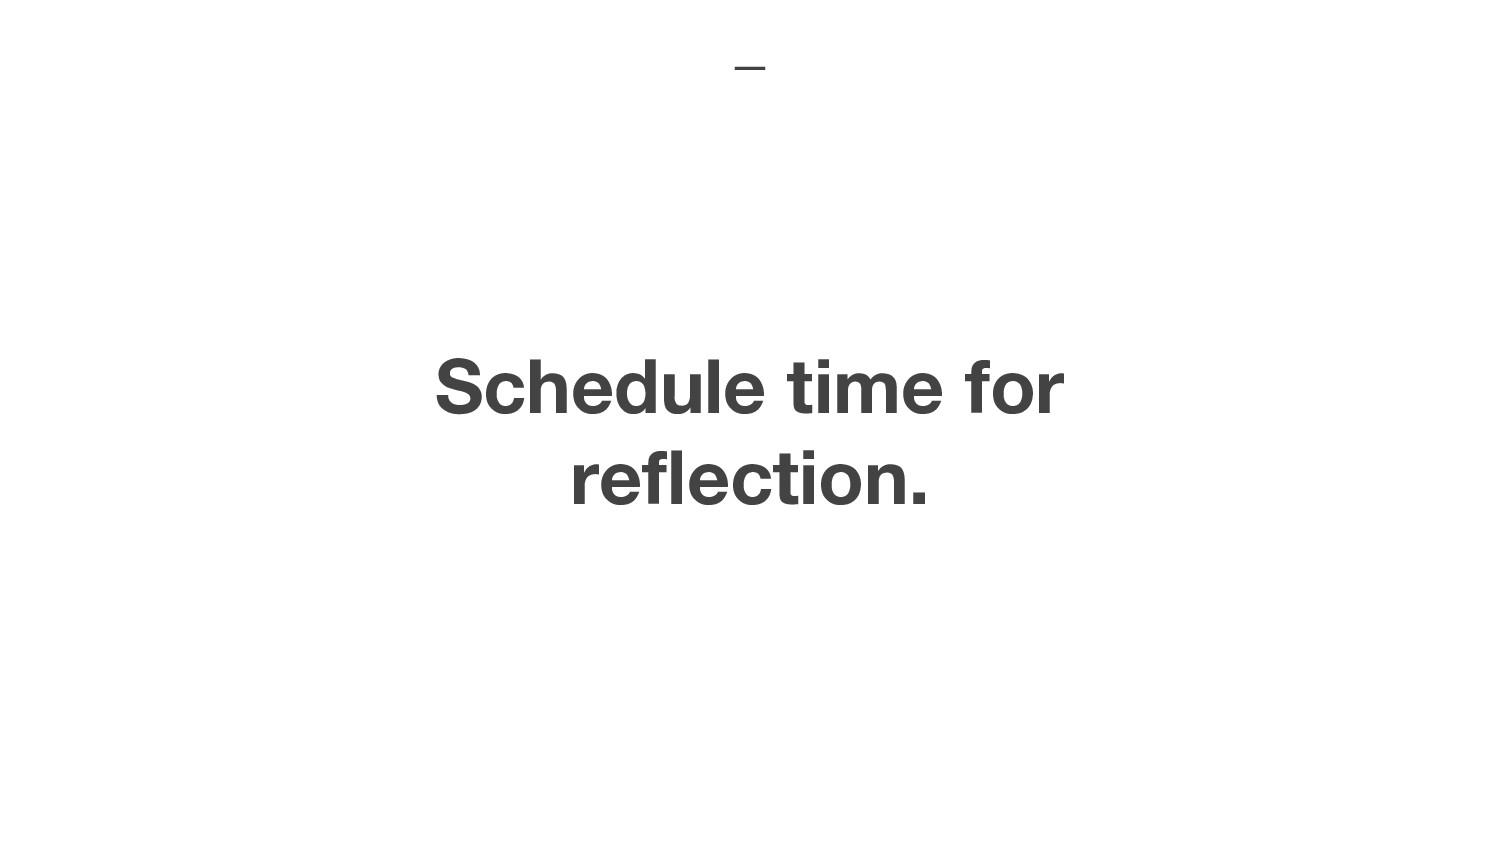 Schedule time for reflection.